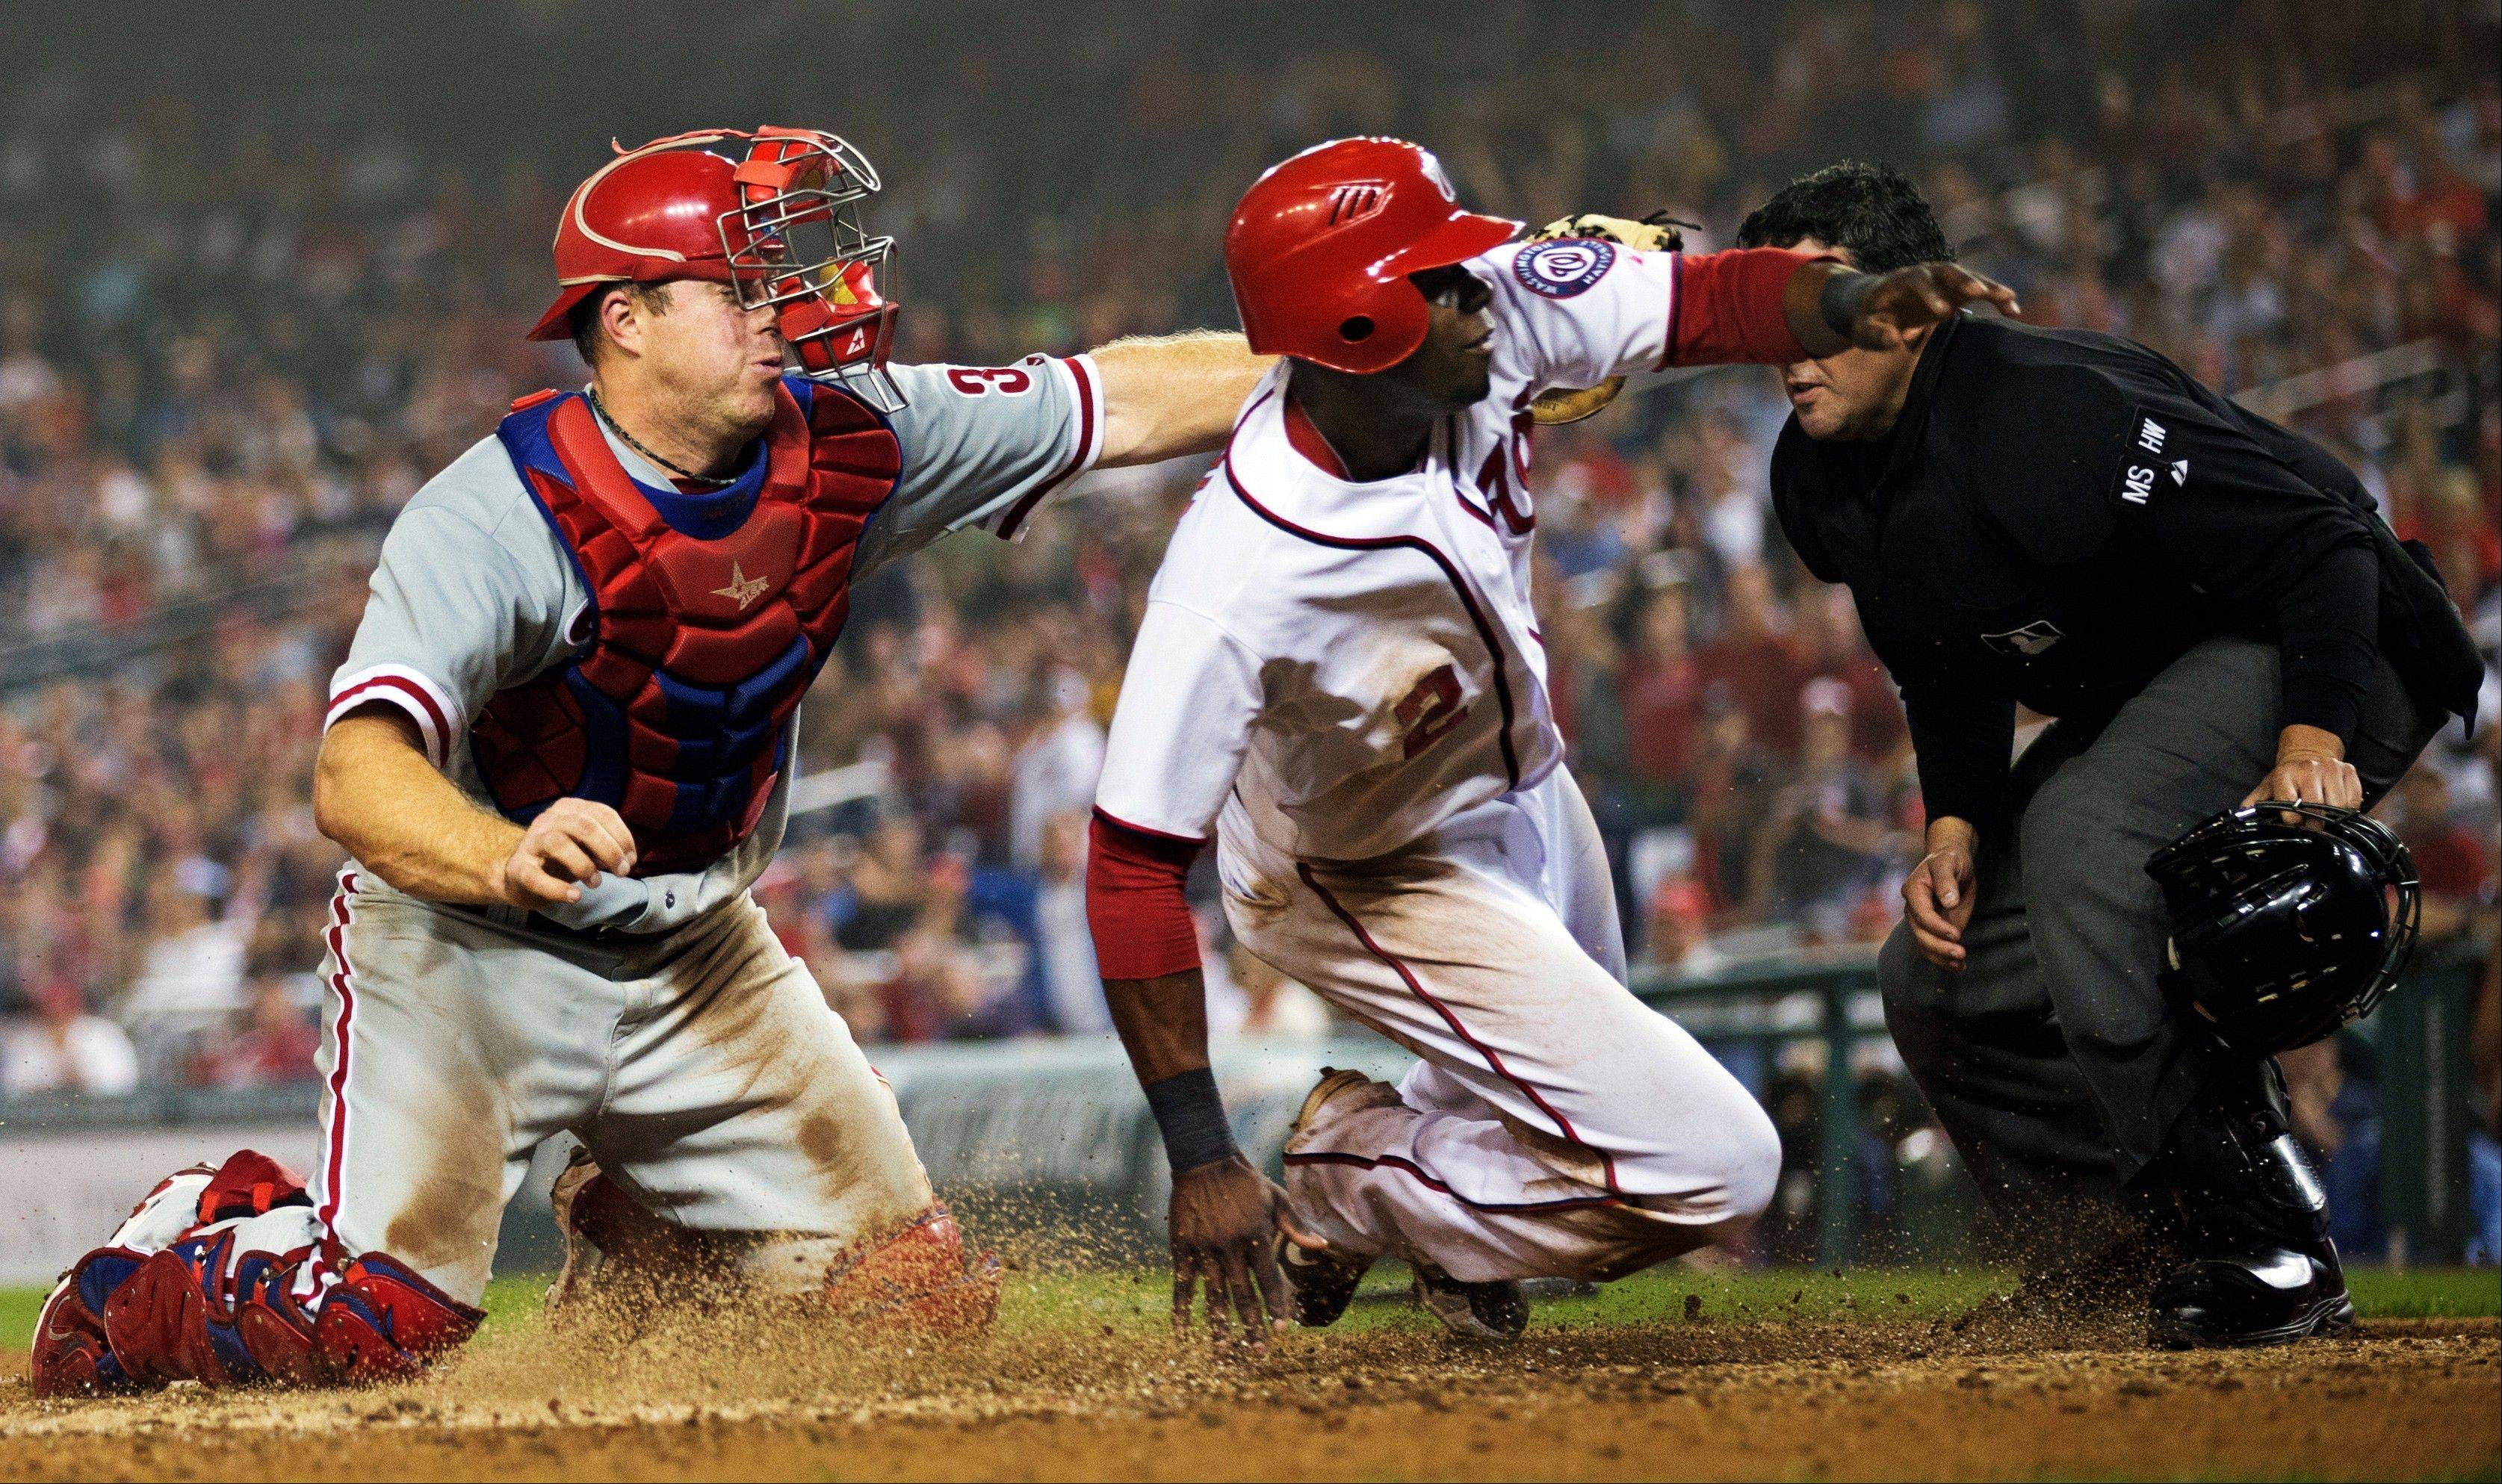 The Nationals' Roger Bernadina beats the tag of Philadelphia catcher Erik Kratz during the eighth inning Tuesday in Washington.